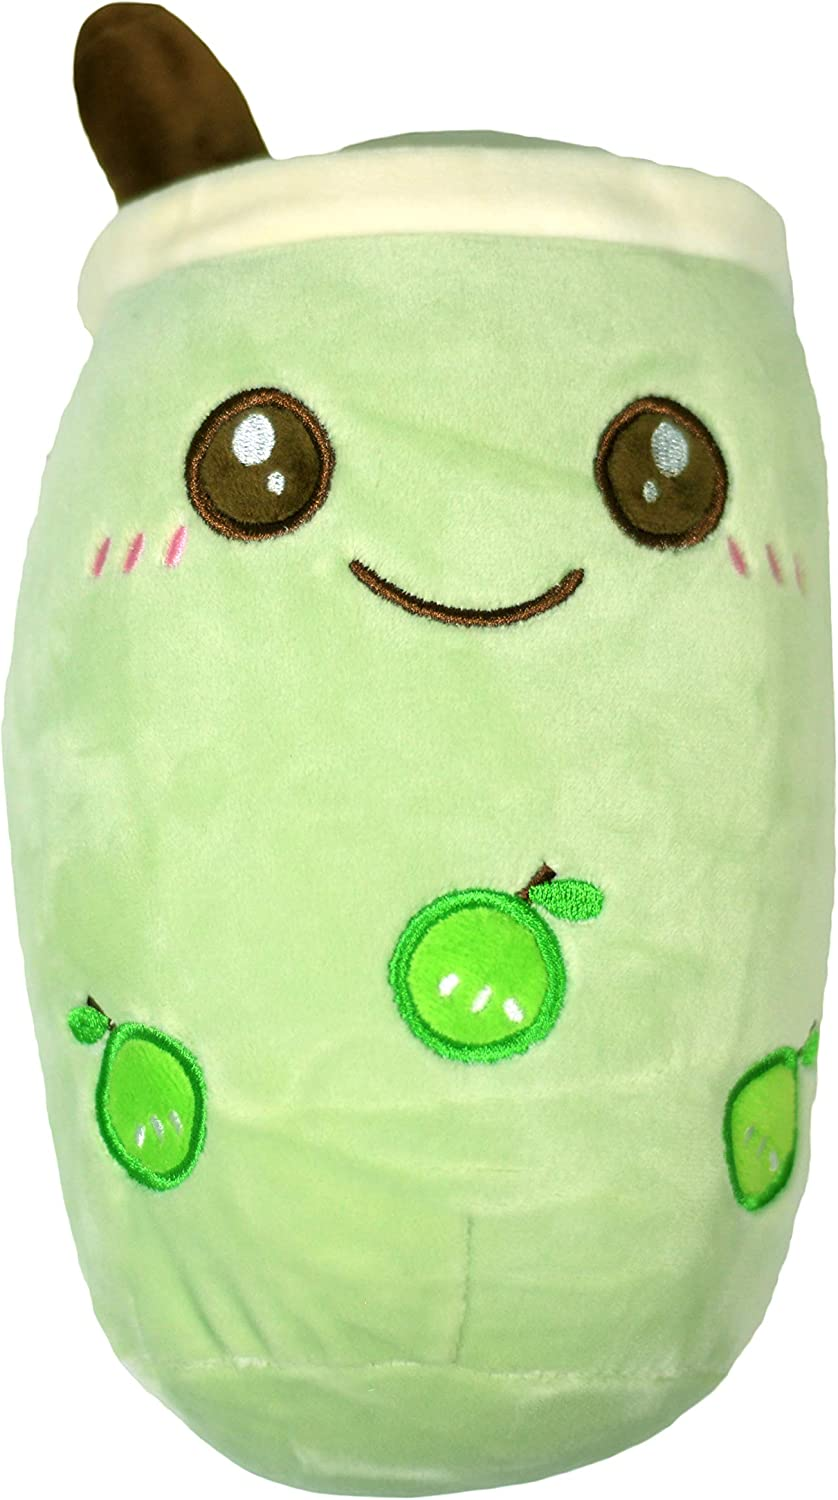 Omega Pax Variety Boba Milk Tea Plushie Pillow, Comforting Stuffed Animal Toy, Super Soft Material, Snuggle Plush Travel Companion (Green Apple Boba)